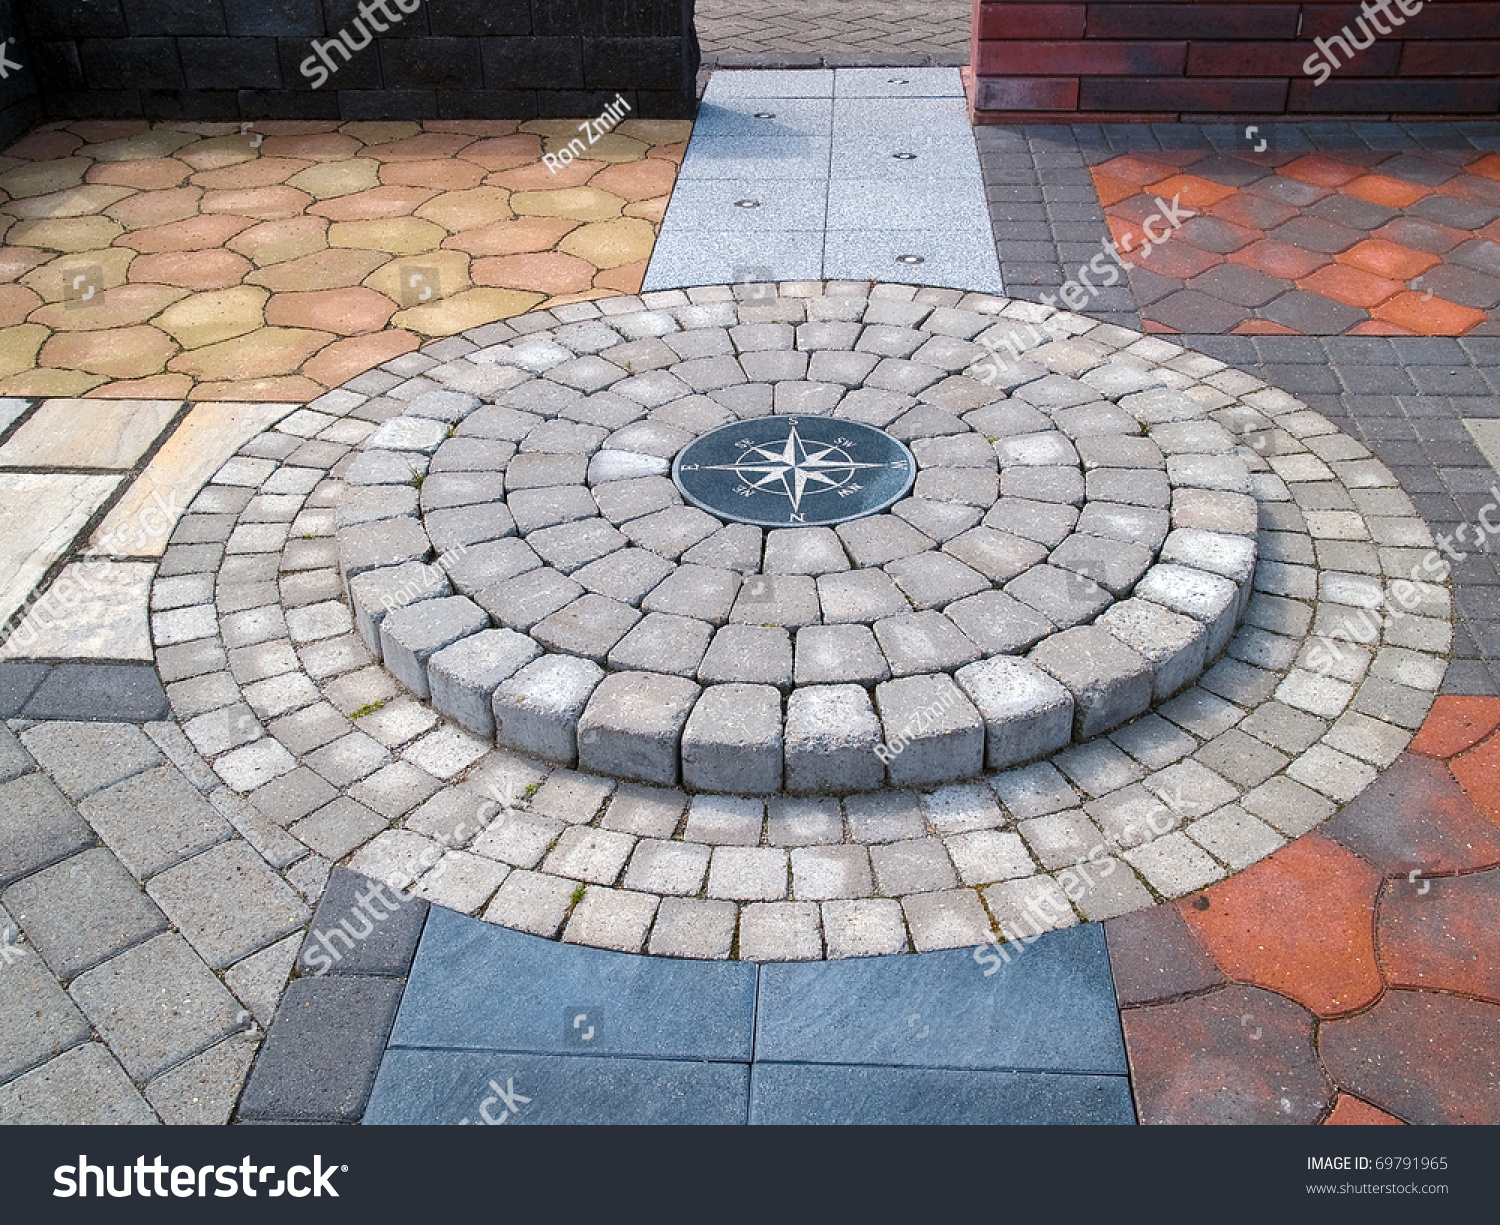 Display different design stone floor tiles stock photo royalty free display of different design stone floor tiles for outdoors indoors garden dailygadgetfo Choice Image